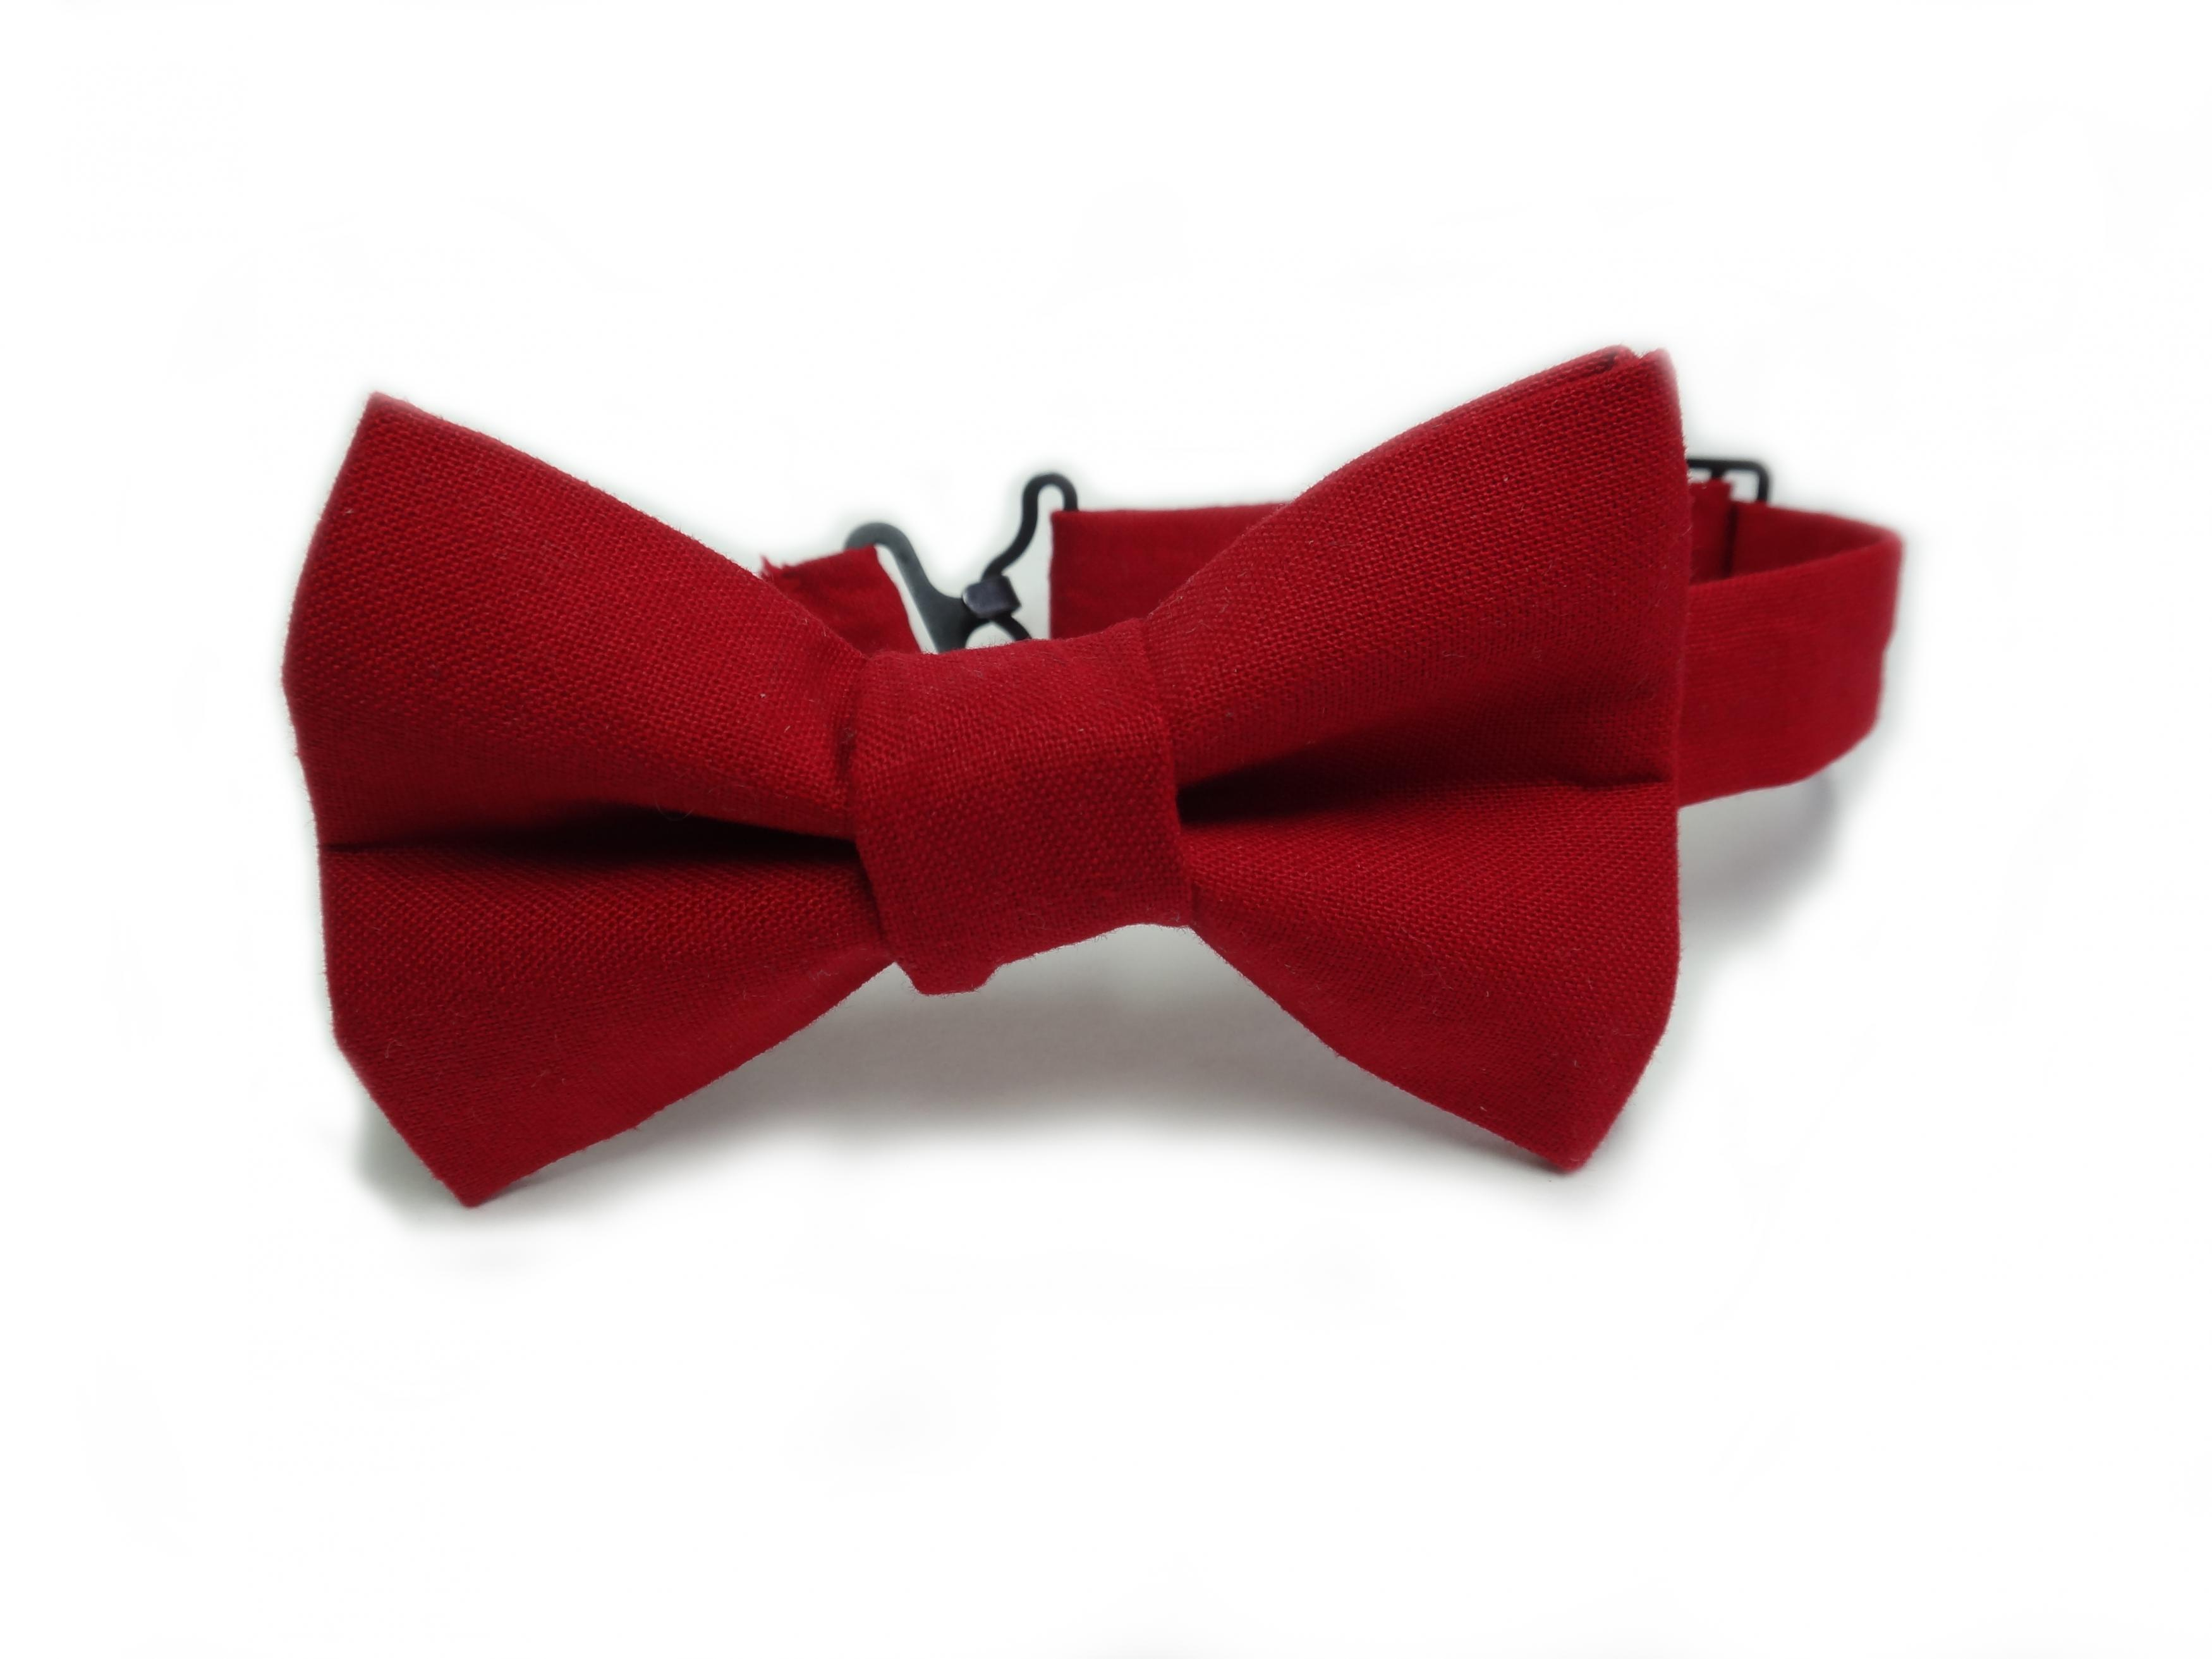 59 Red Bow Ties, Plain Burgundy Red Bow Tie From Ties Planet UK ...